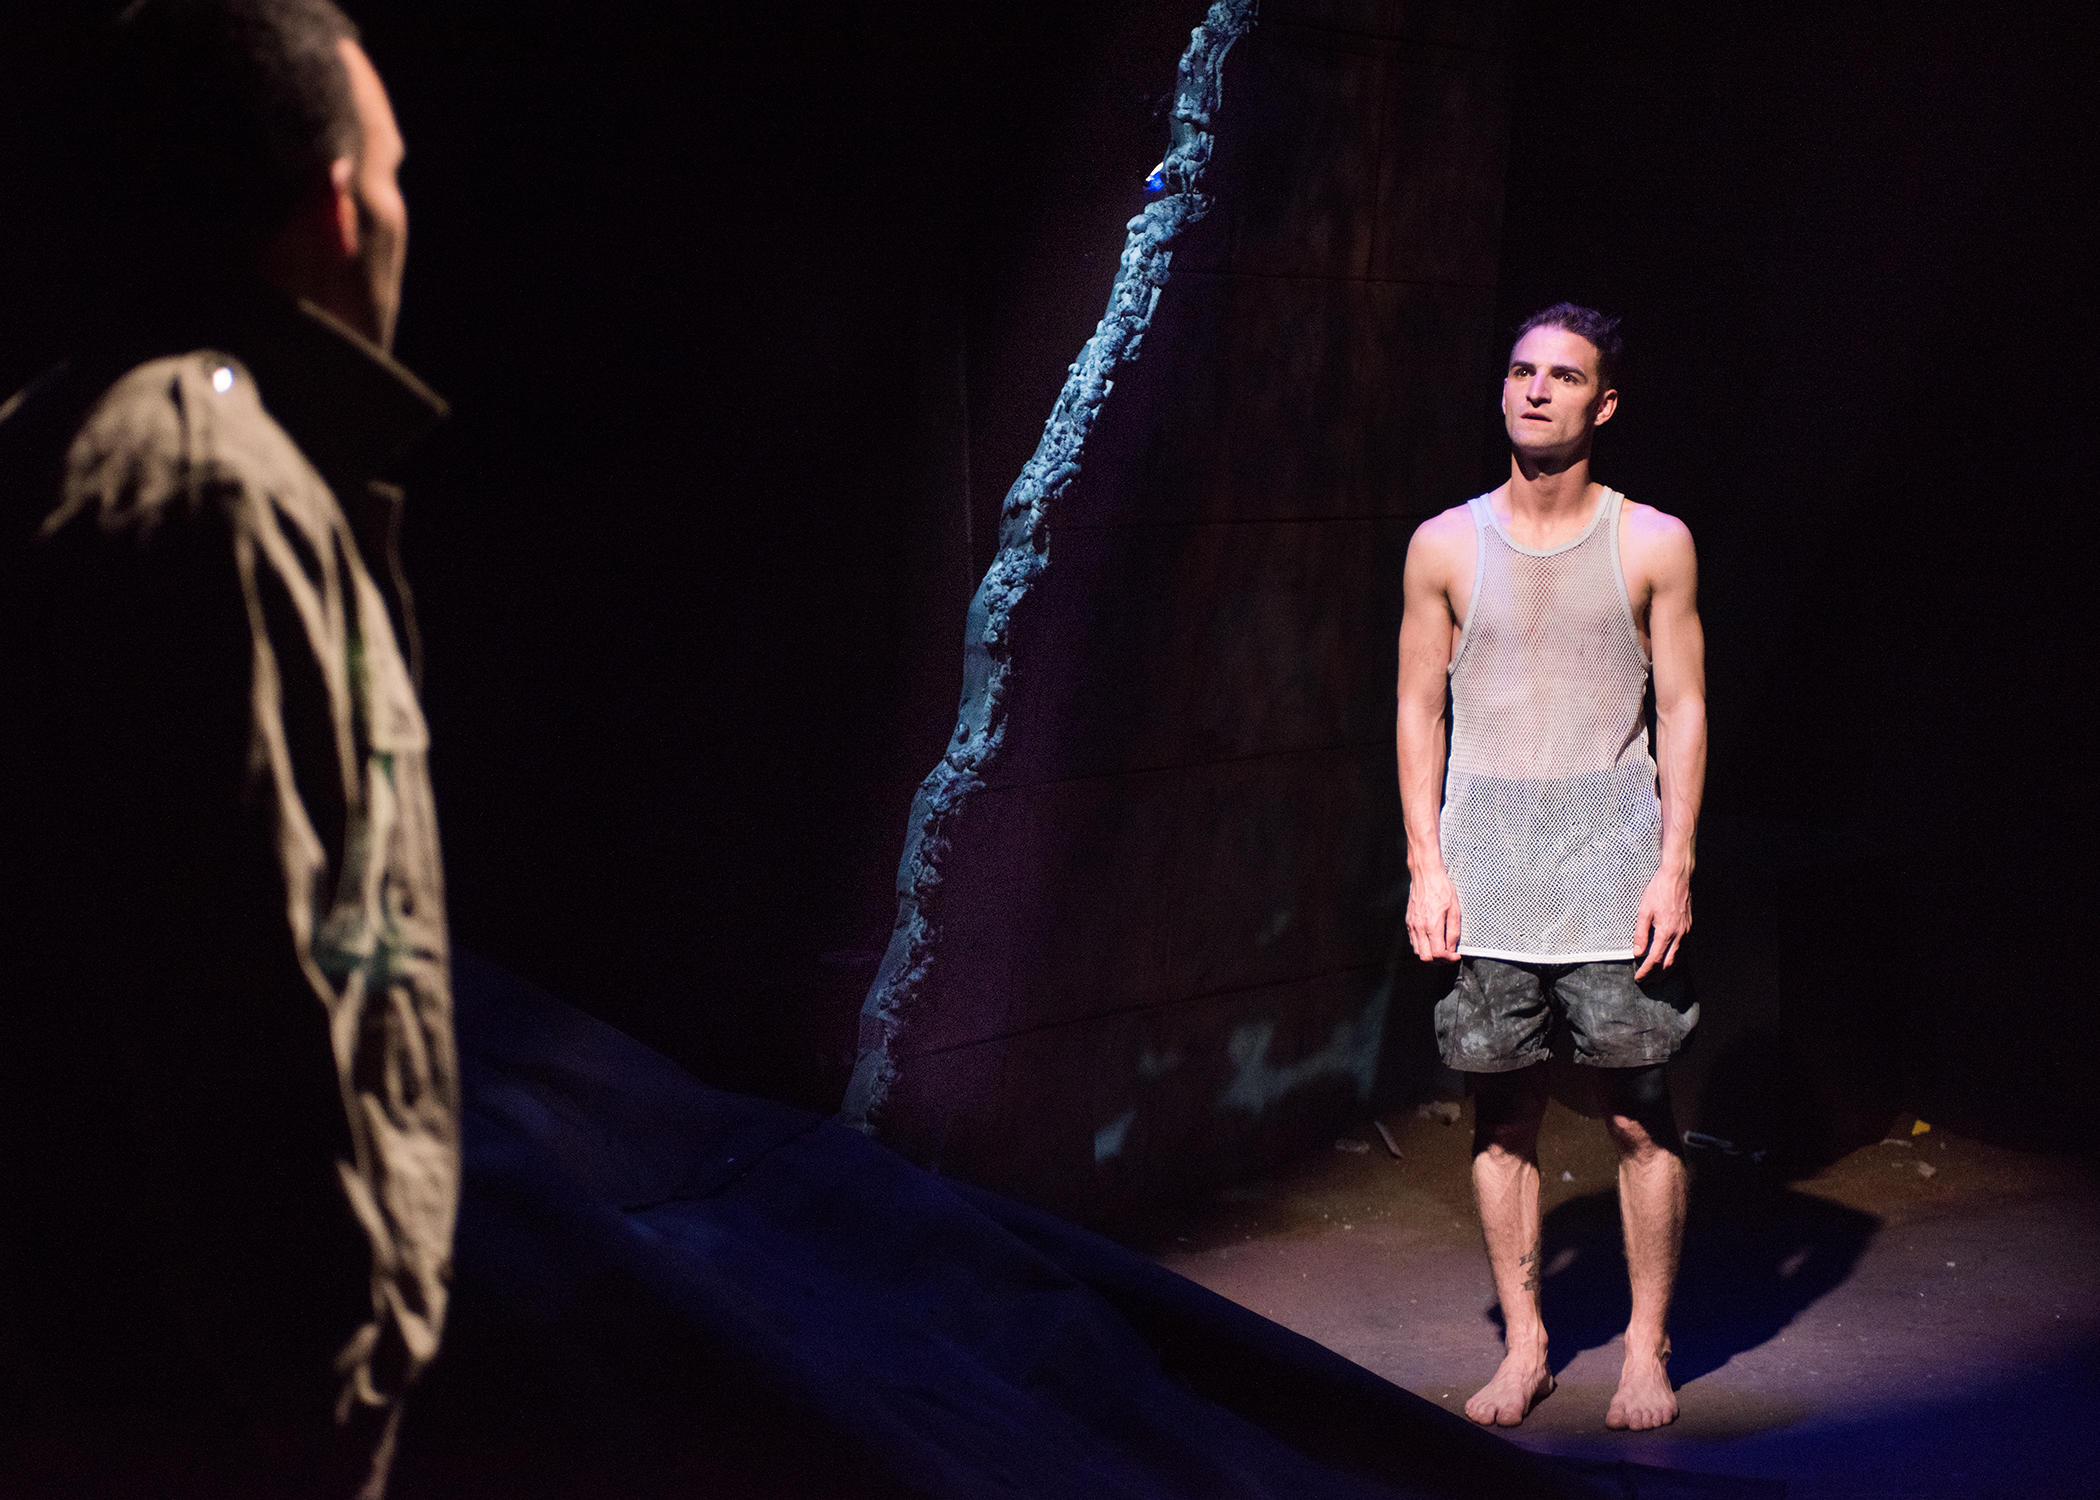 Ed Berkeley, JD Scalzo.  Scenic Design by Devin Kasper, Costume Design by Miriam Lewis, Lighting Design by Christian V. Mejia, Sound Design by Theodore J.H. Hulsker, Prop Design by Adeline Smith, Stage Management by Kaitlin Rosen.  Photo by Lois Tema.